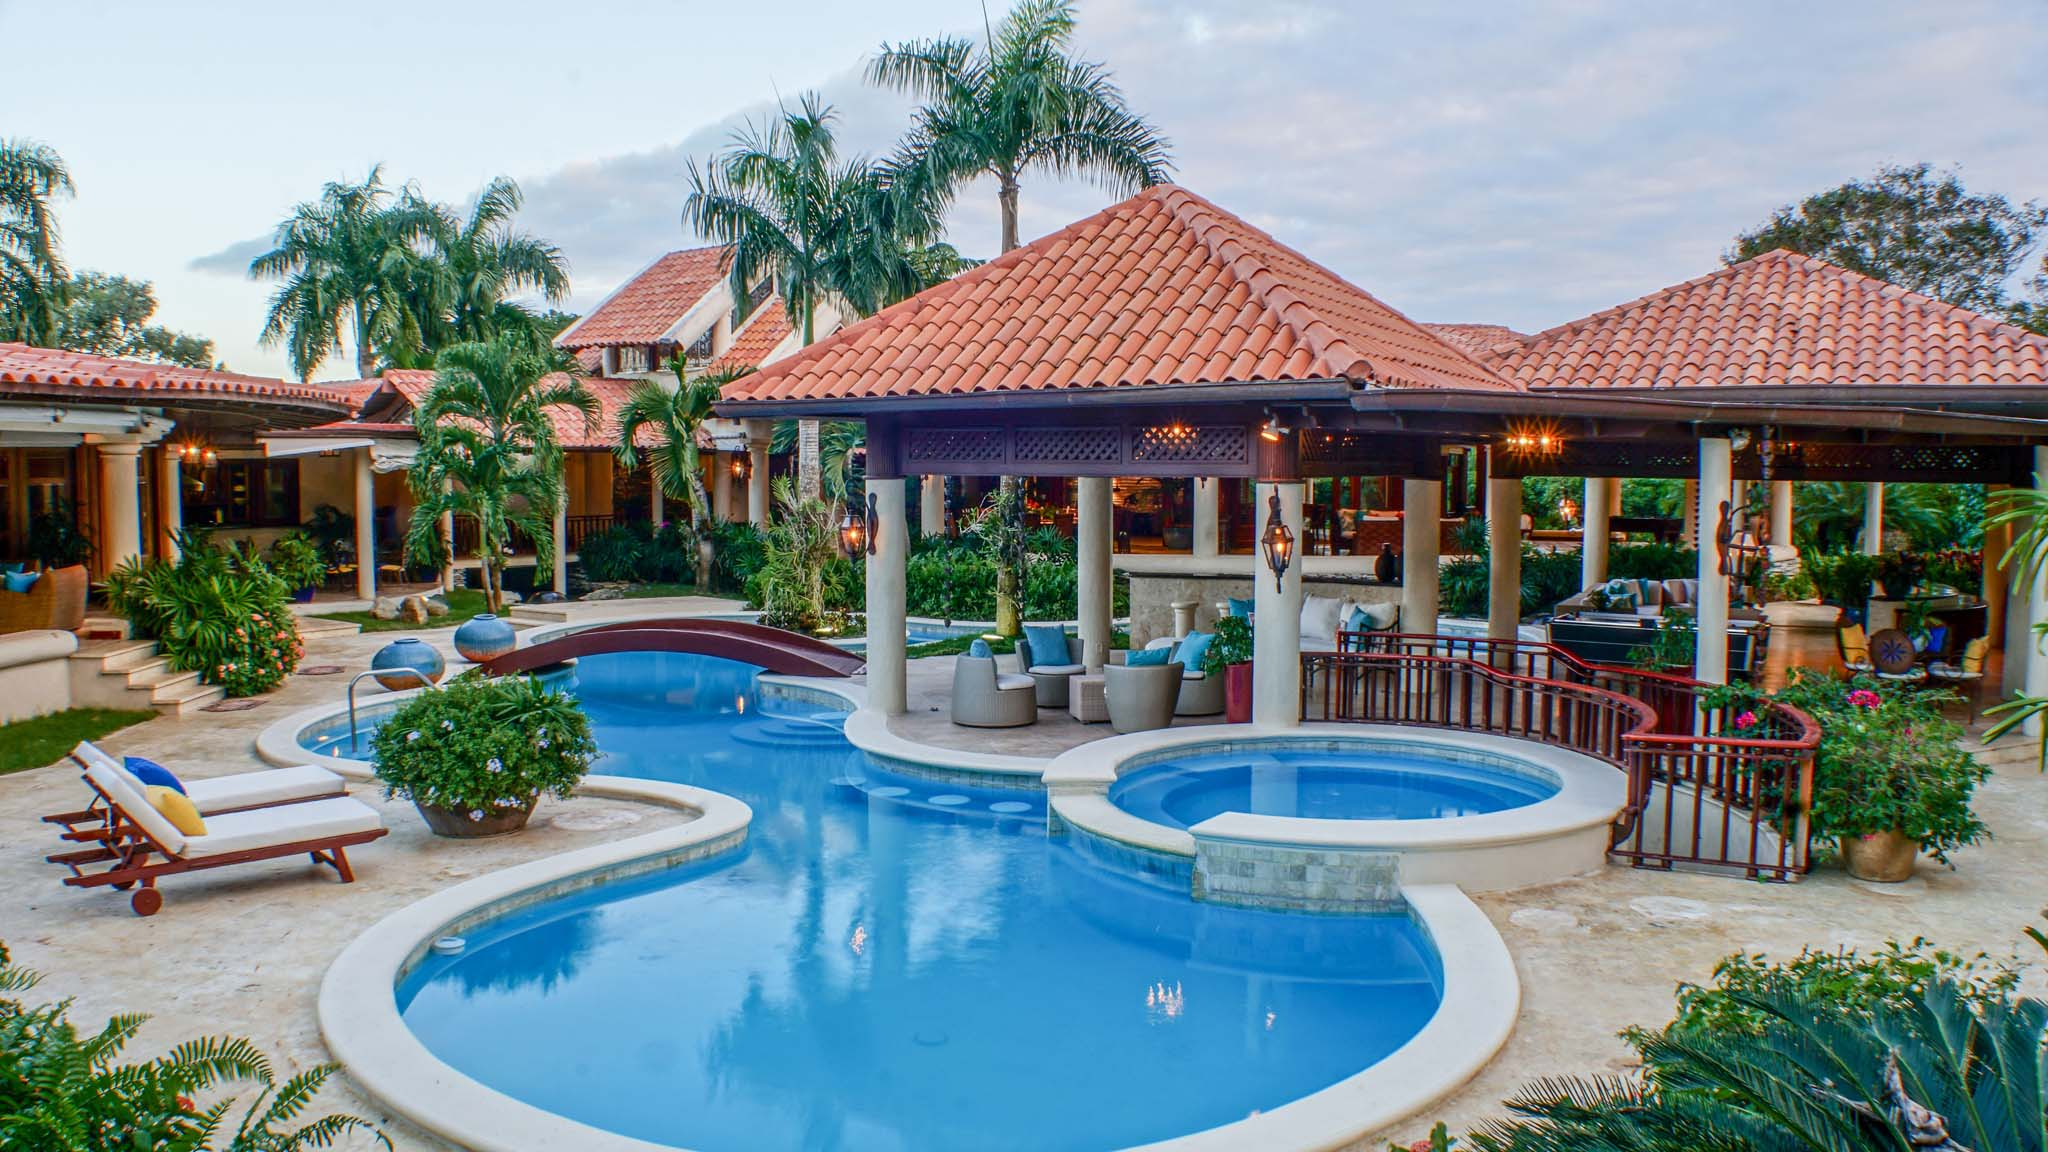 Single Family Home for Sale at MEGA MANSION with MOTIVATED SELLERS and Luxury Finishes Casa De Campo, La Romana, Dominican Republic